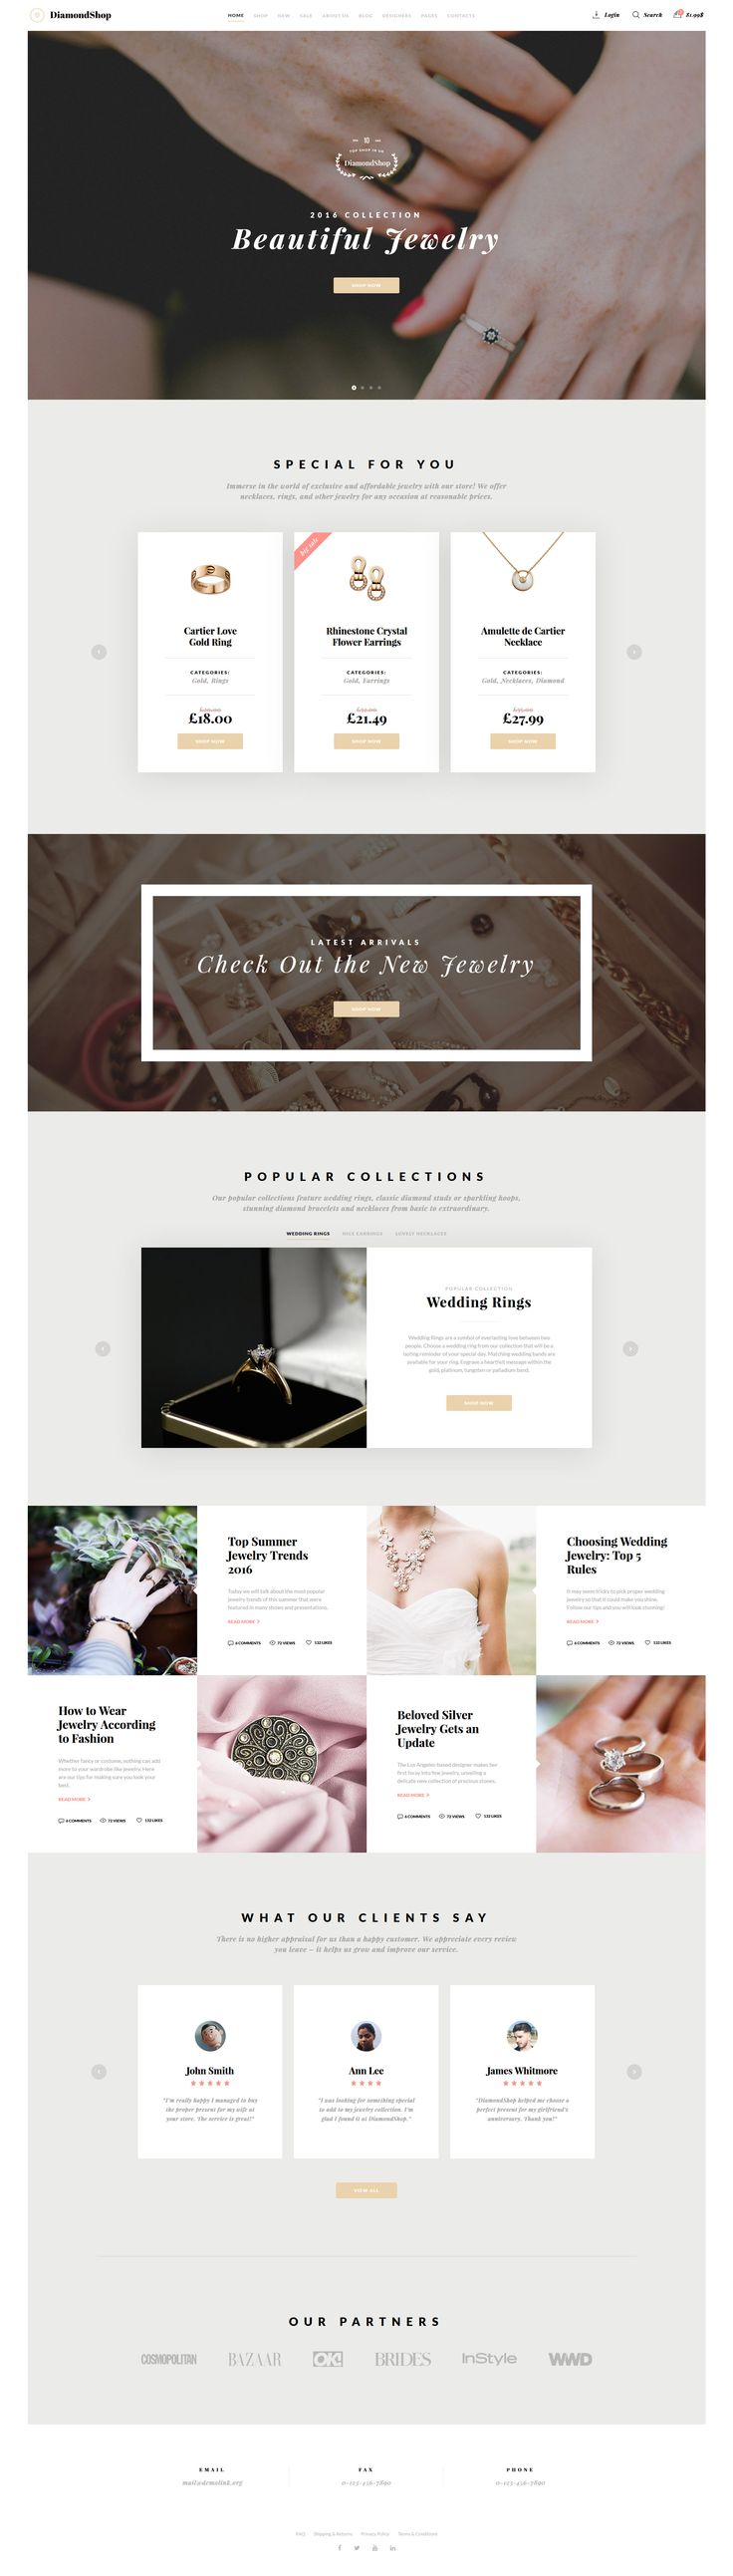 Jewelry Responsive Website Template - https://www.templatemonster.com/website-templates/jewelry-responsive-website-template-60076.html